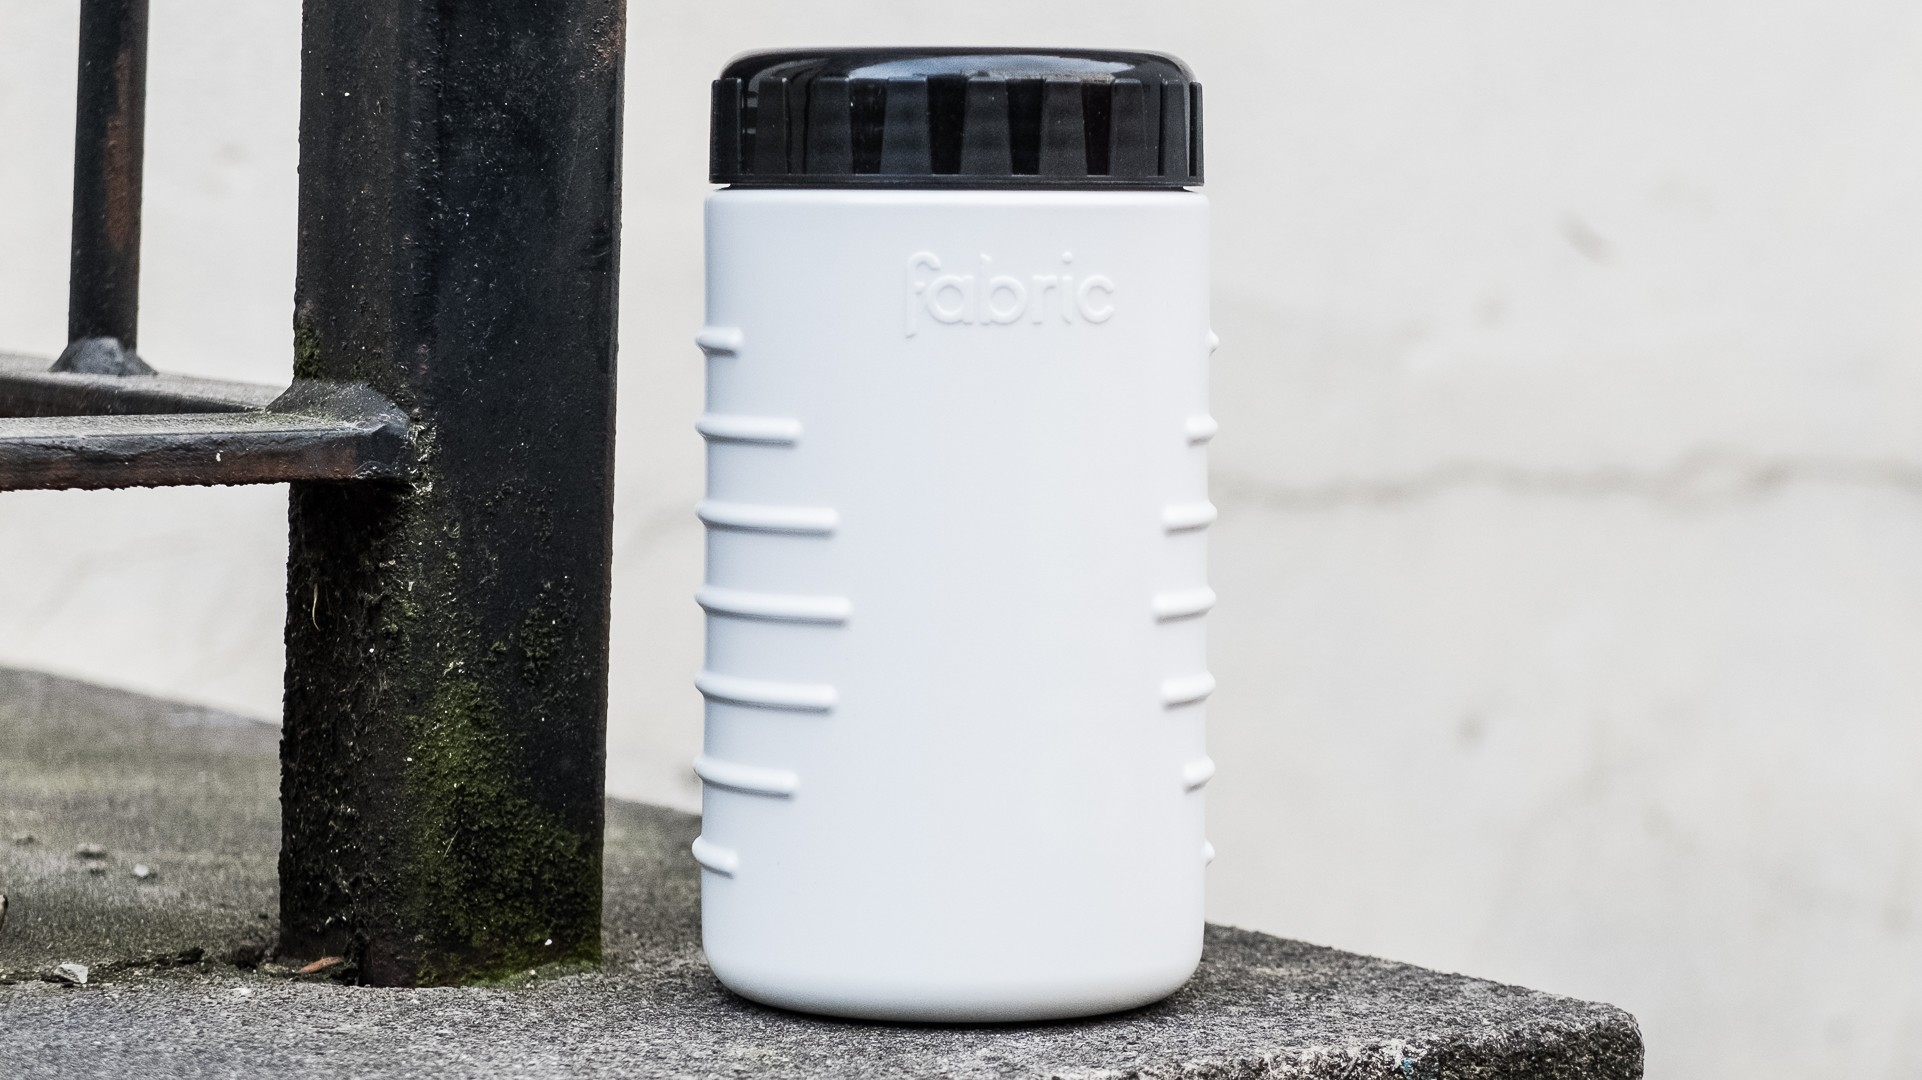 The container is water resistant, so you can splash through puddles to your heart's content